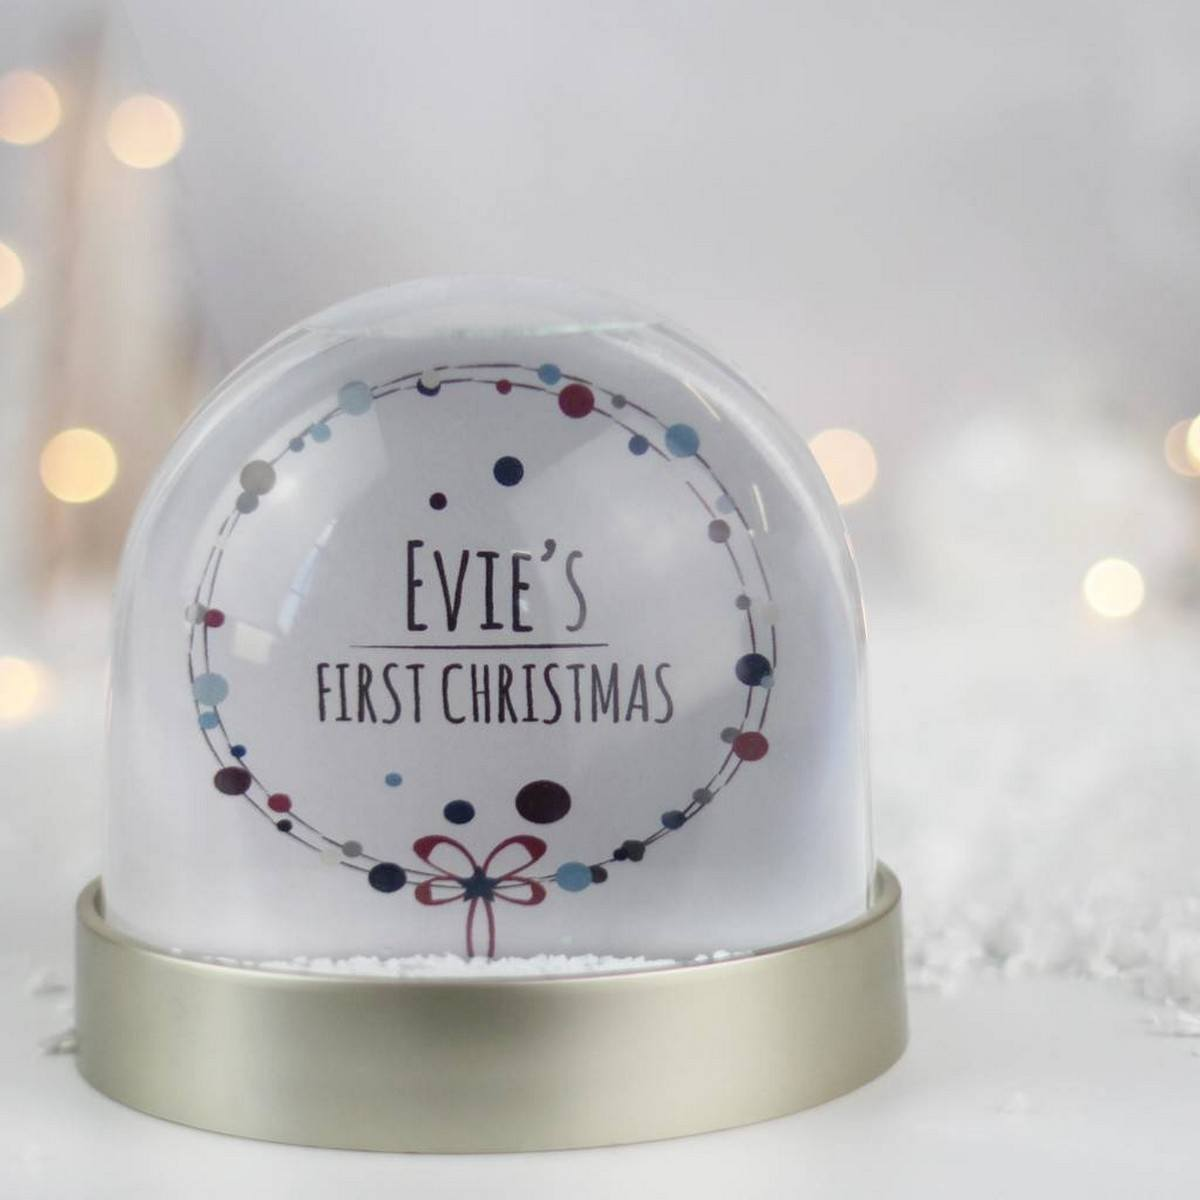 Do you remember being mesmerized by snow globes when you were a kid? These snow globe ideas capture the magic of the season and can be as personalized as you desire.